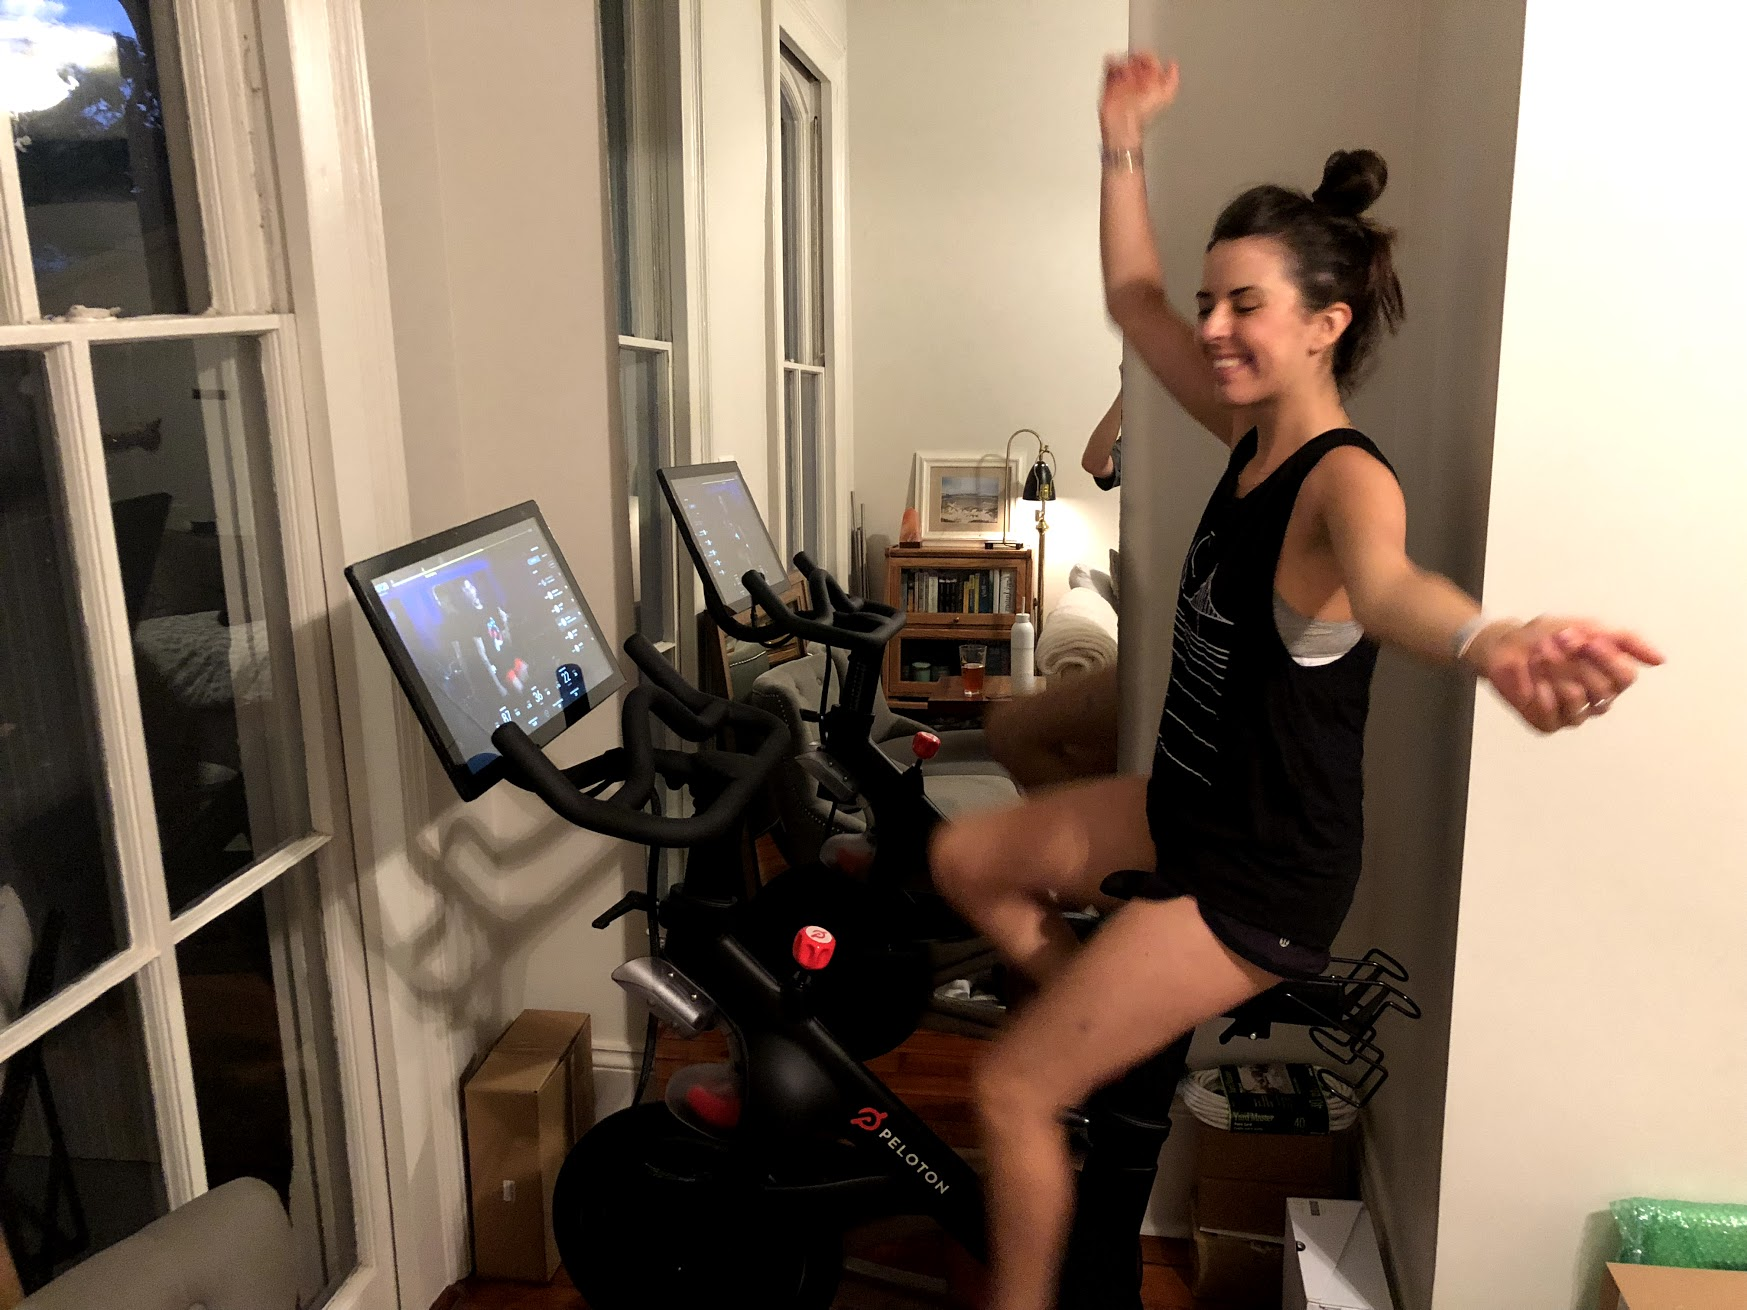 I feel like a strong af badass every time I can do a peloton ride! This def makes my list 😎